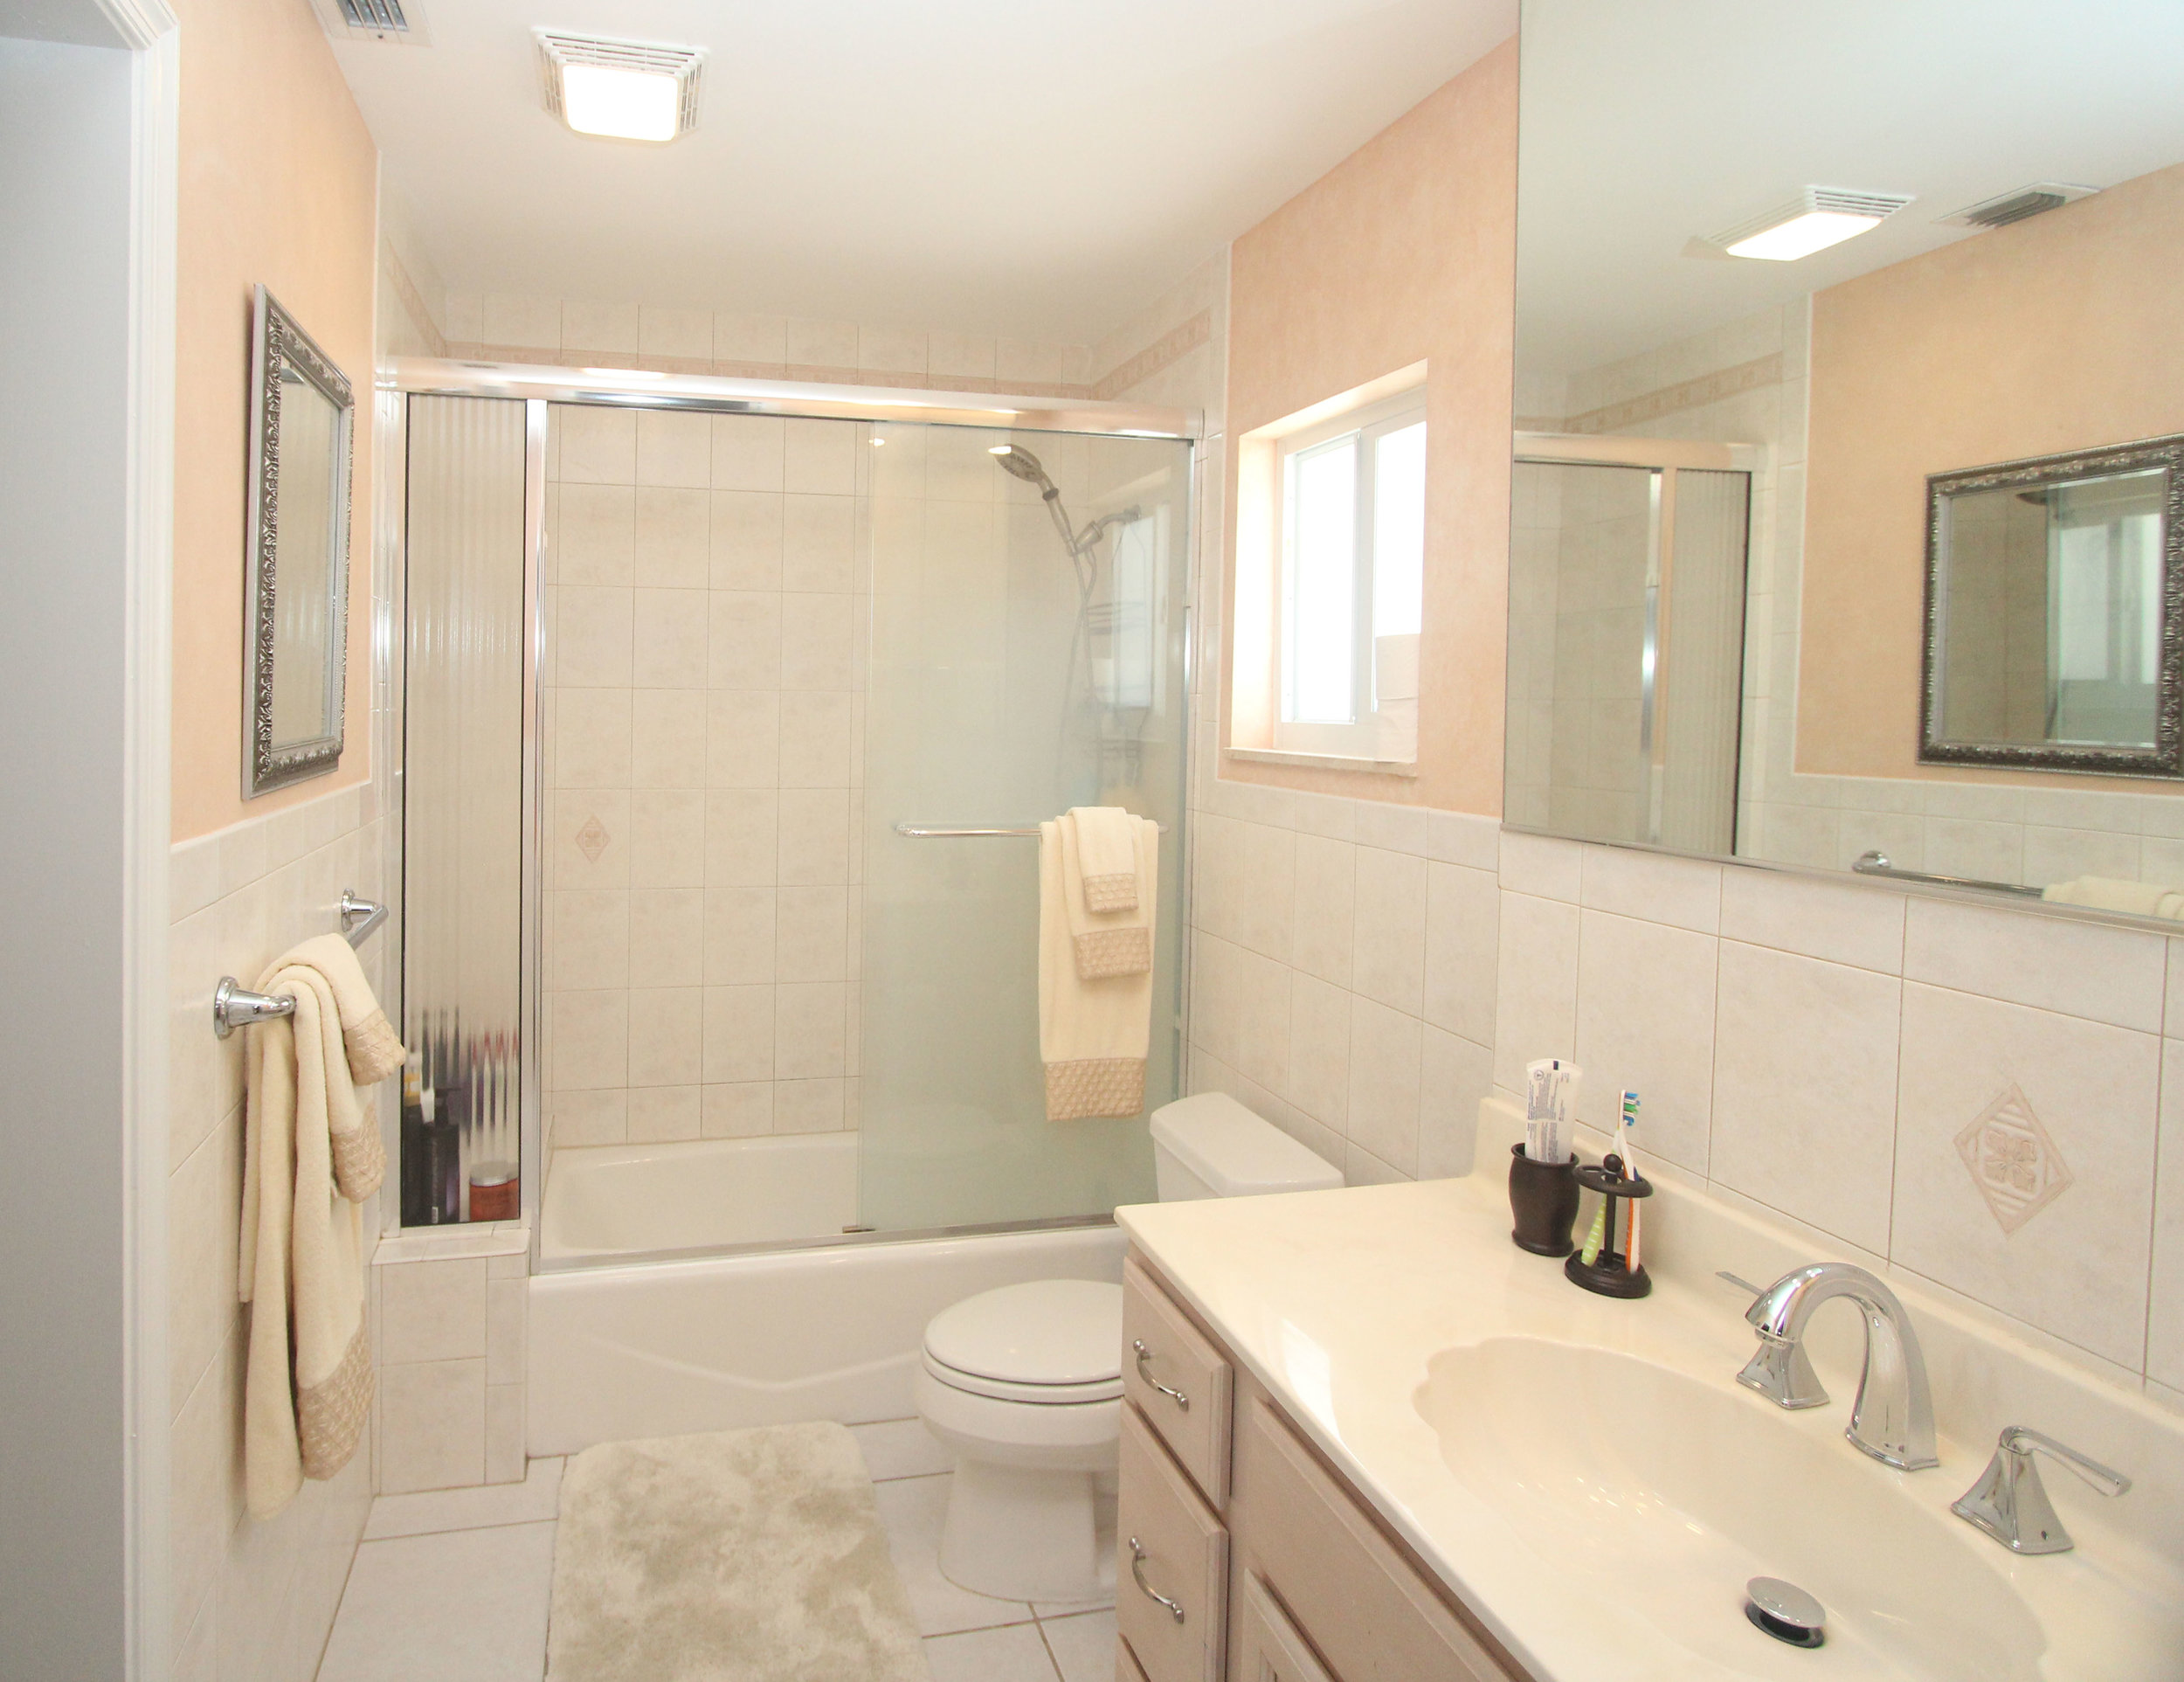 20 - Master Bathroom.jpg